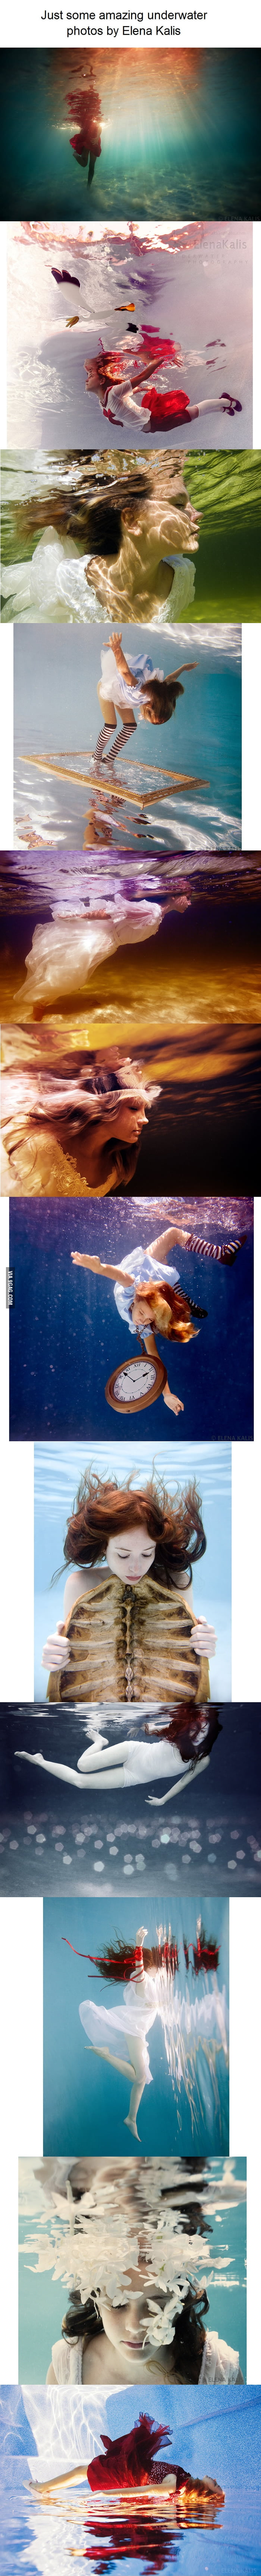 Some amazing underwater photos by Elena Kalis